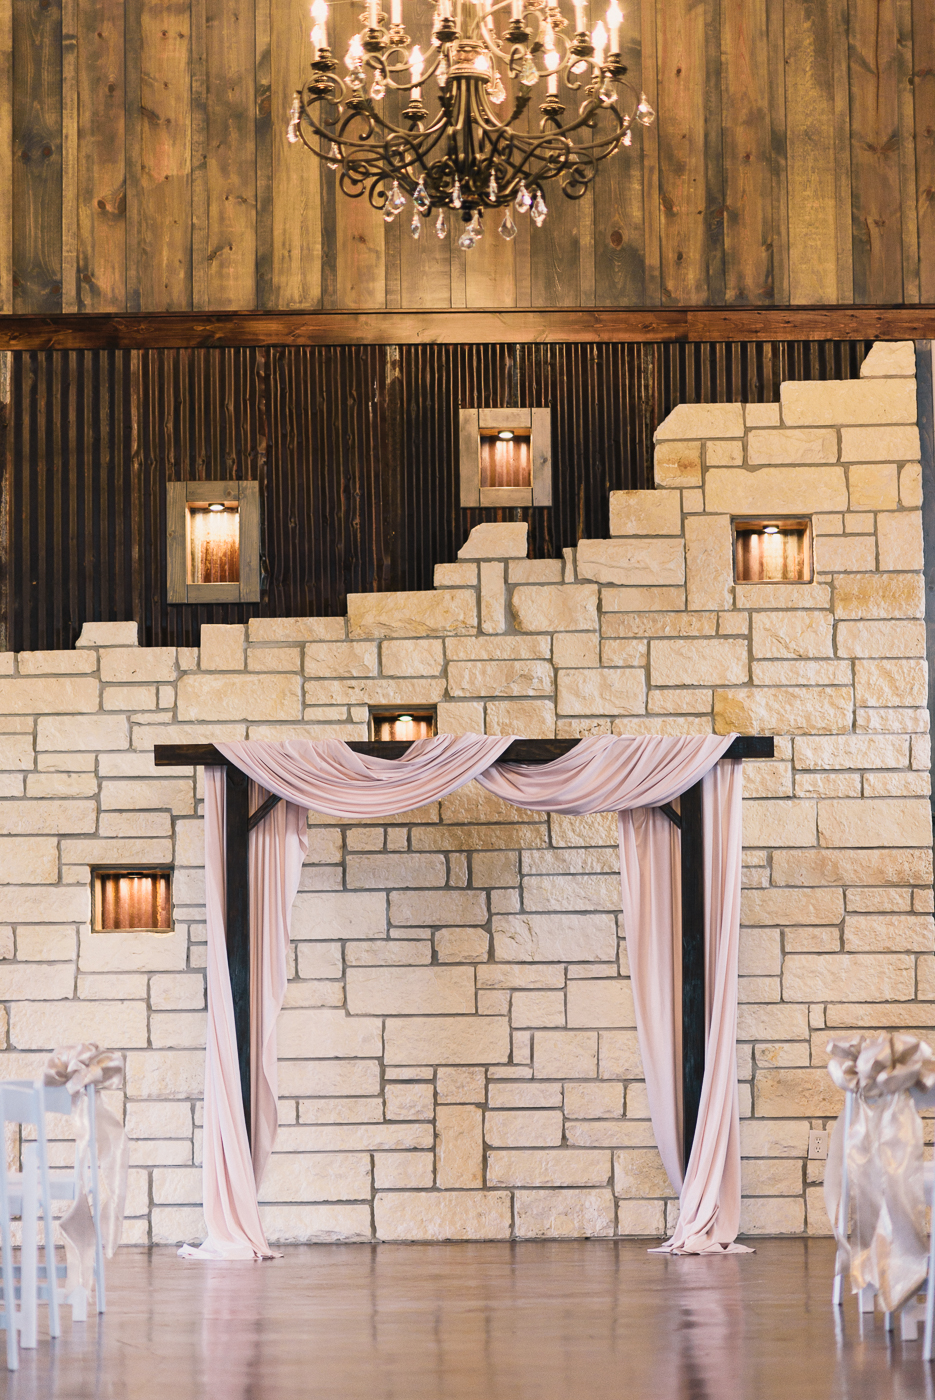 Pink wedding arch limestone wall rustic sheet metal shiplap wood pannel